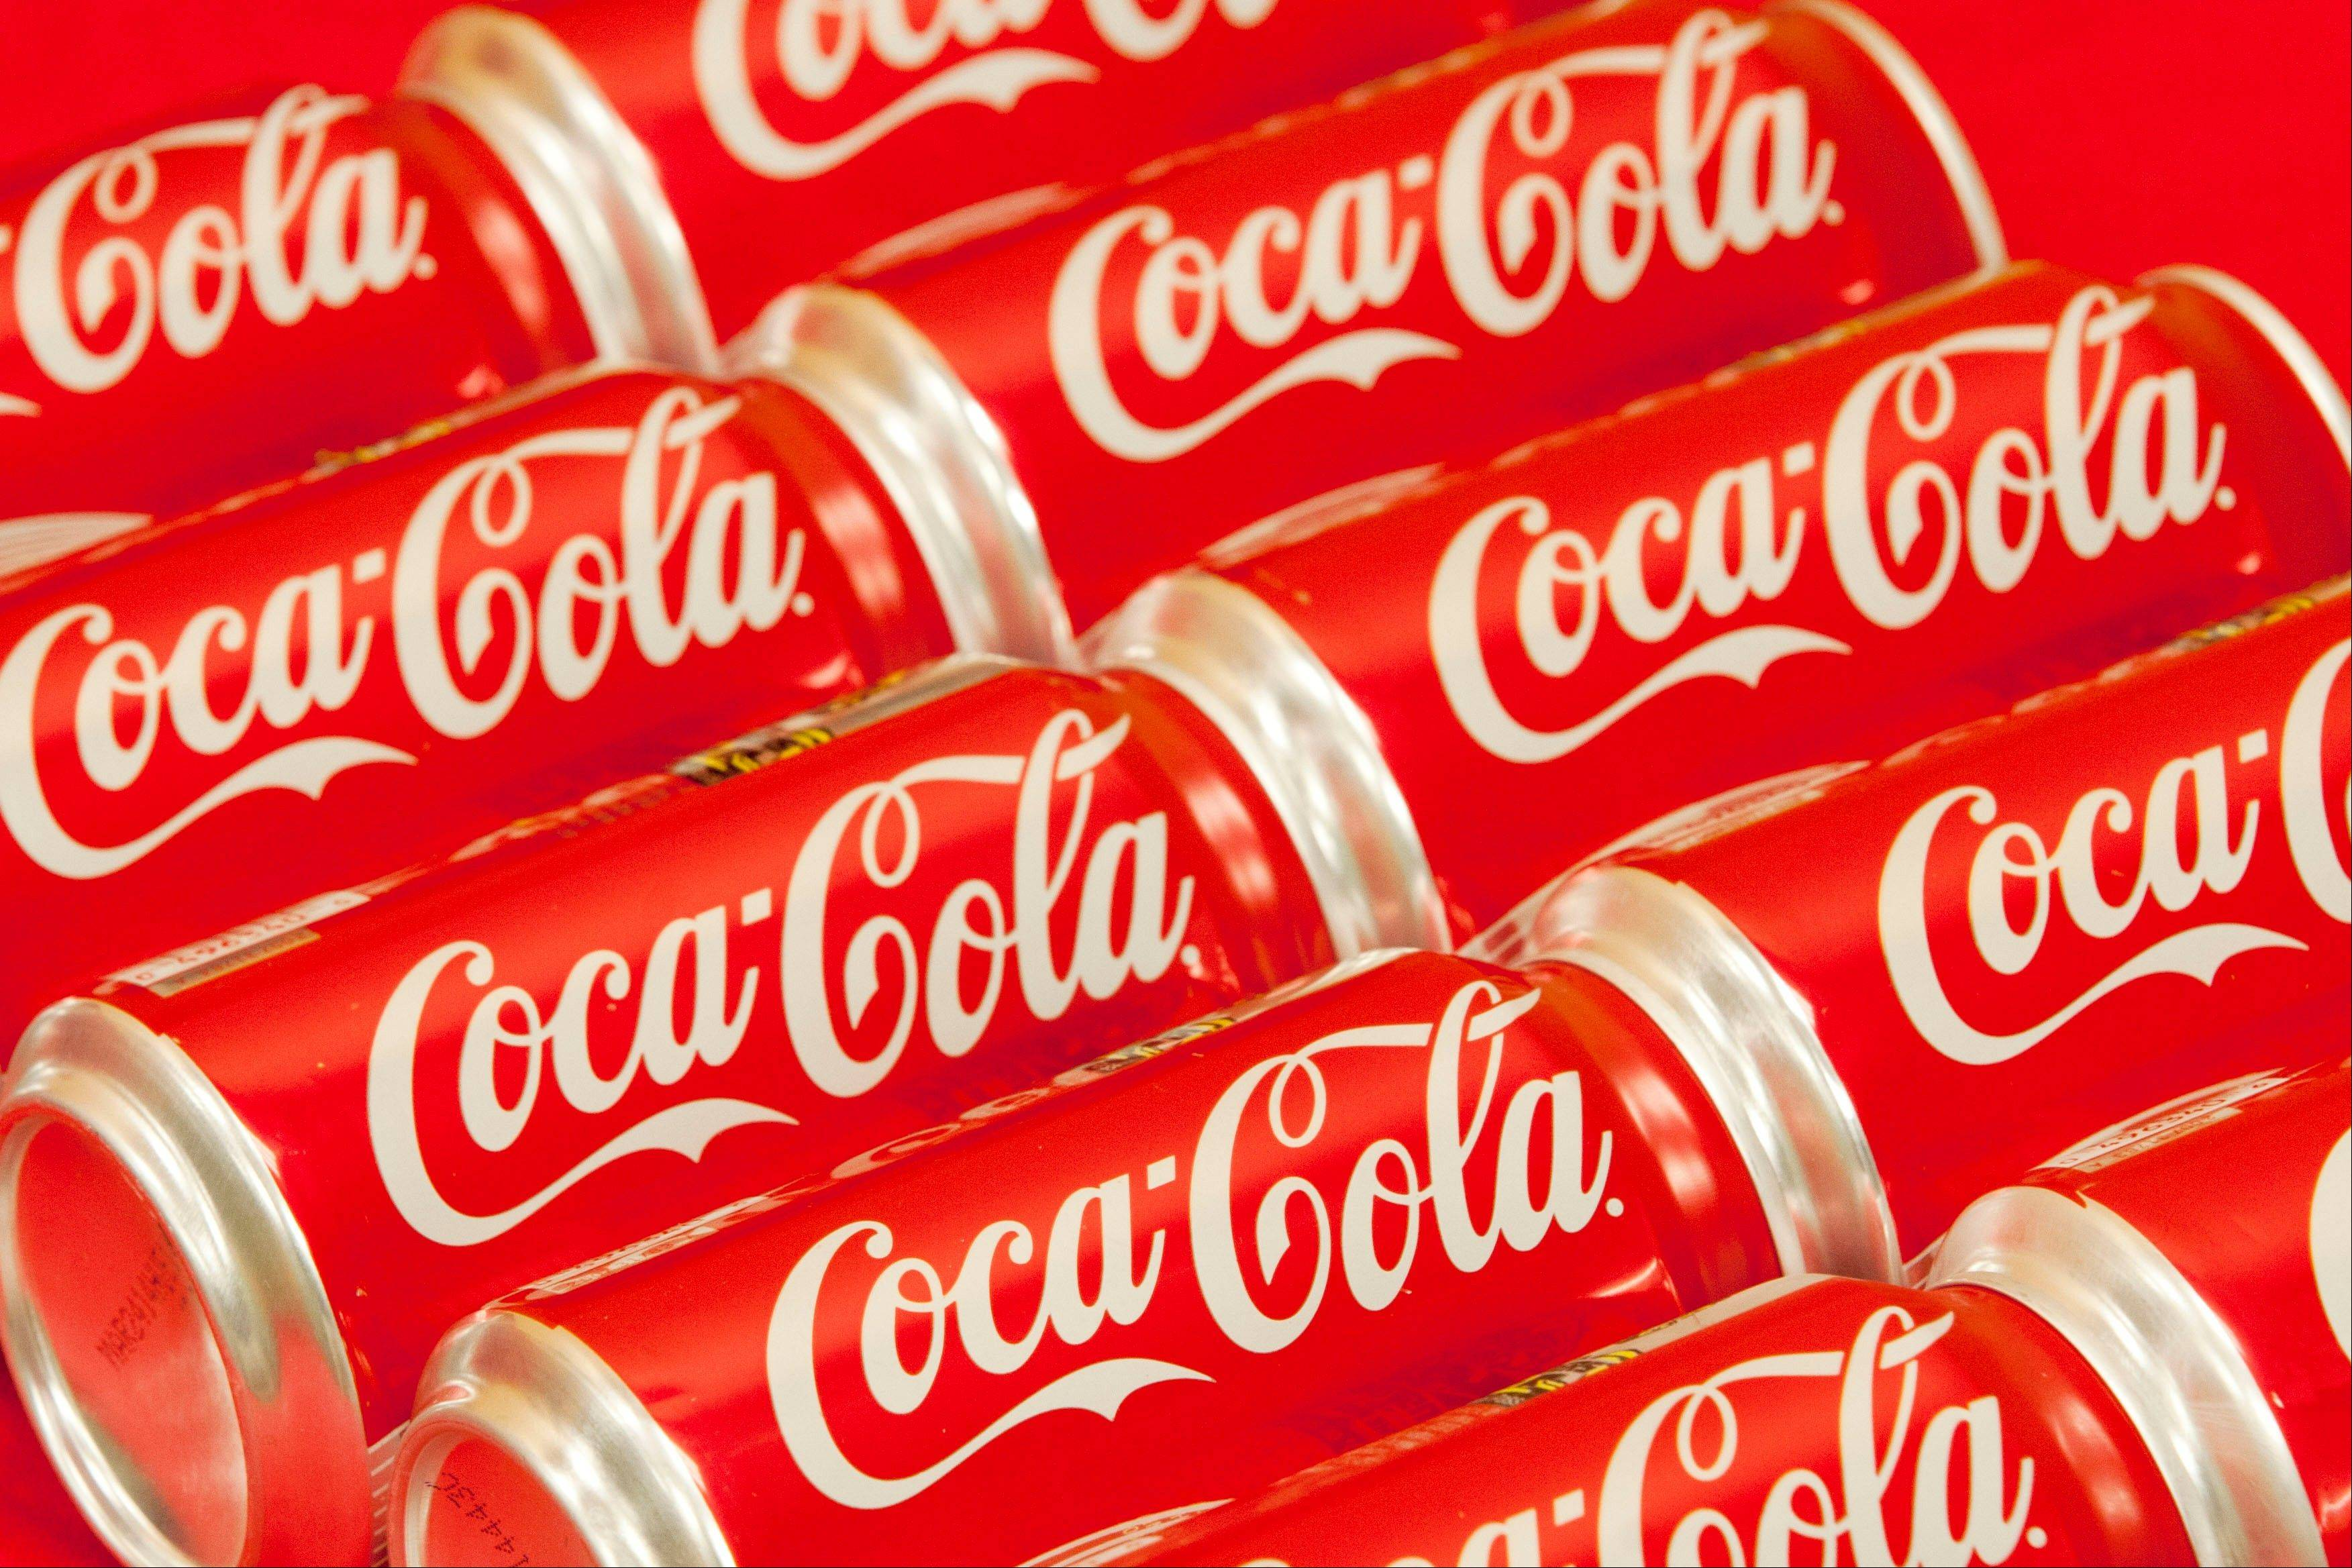 Coca-Cola Co. said profit fell 4 percent last quarter, the second decline in a row, as sales were sapped by economic weakness in China and Europe, shifting tastes in the U.S. and unseasonable weather in places such as India.